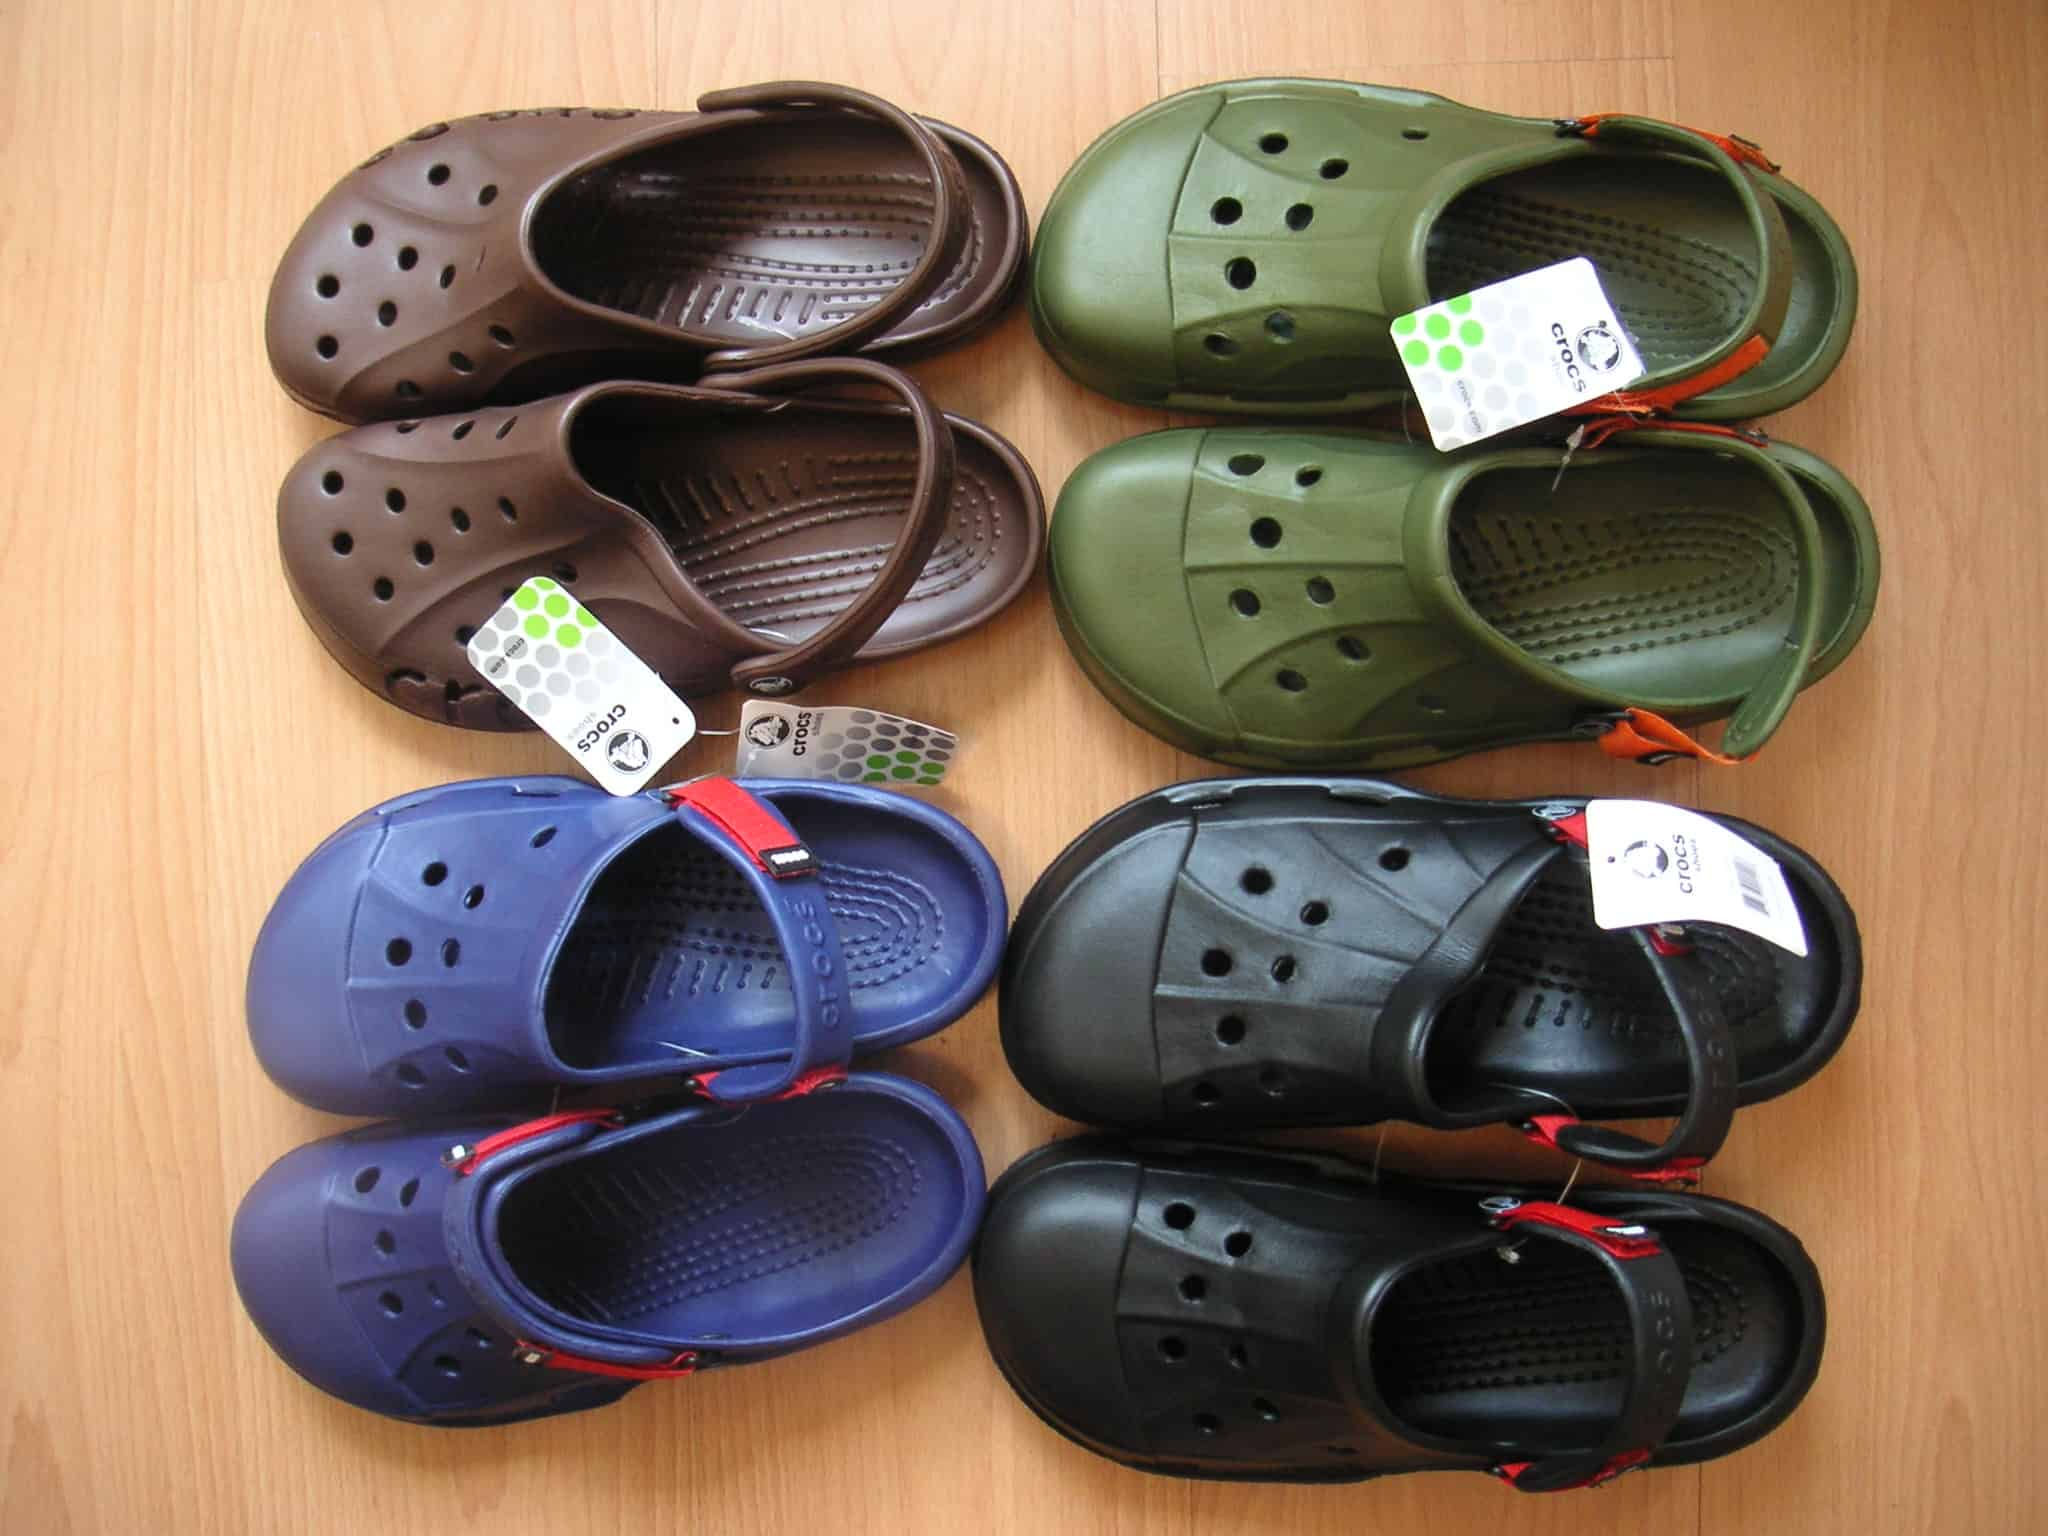 Why do Hospital Staff Wear Crocs?